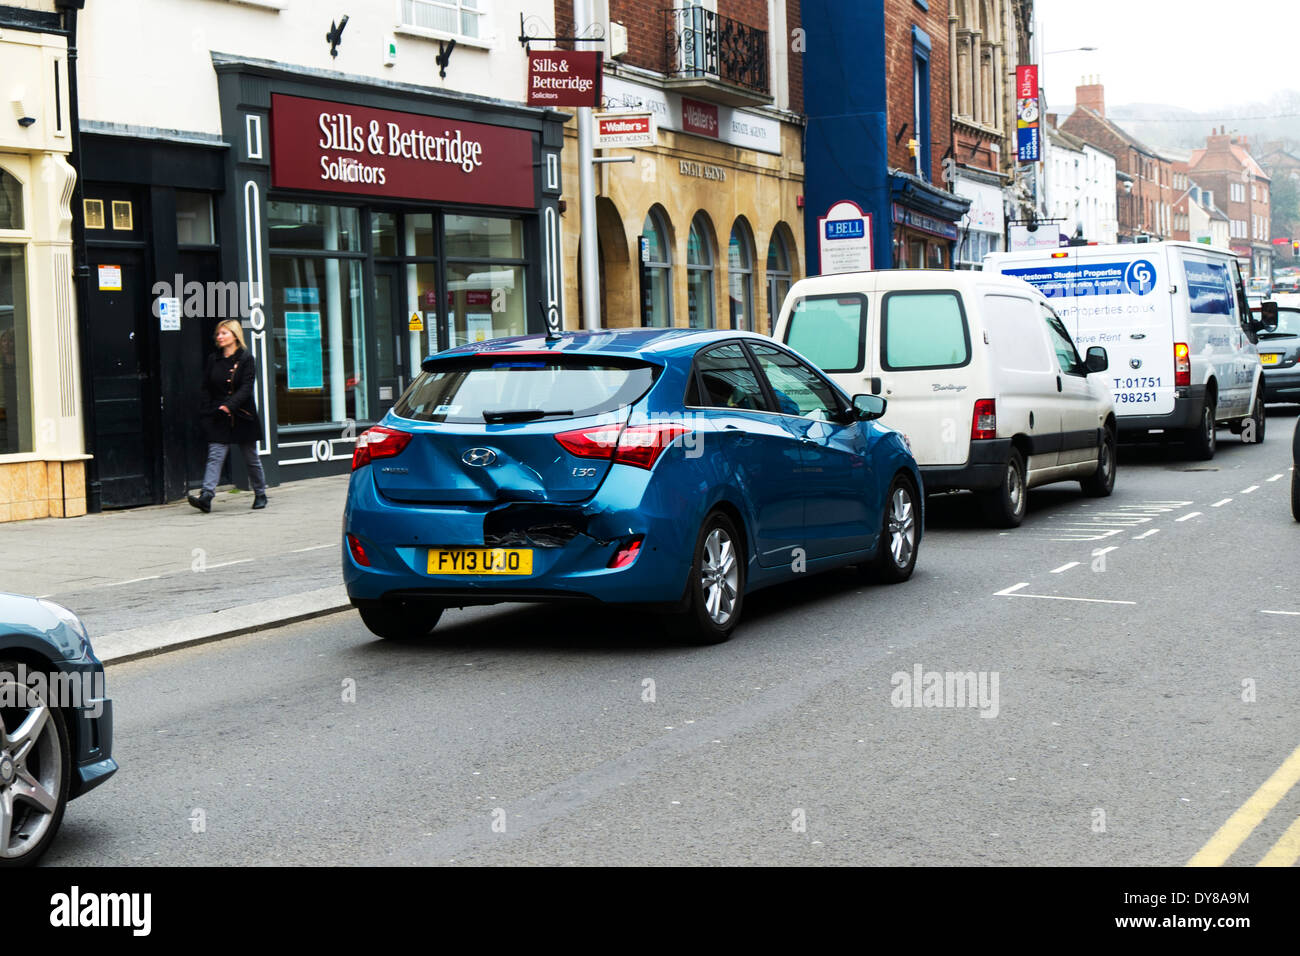 Rear Shunt Car Accident Vehicle Collision Crash Damage Car Cars